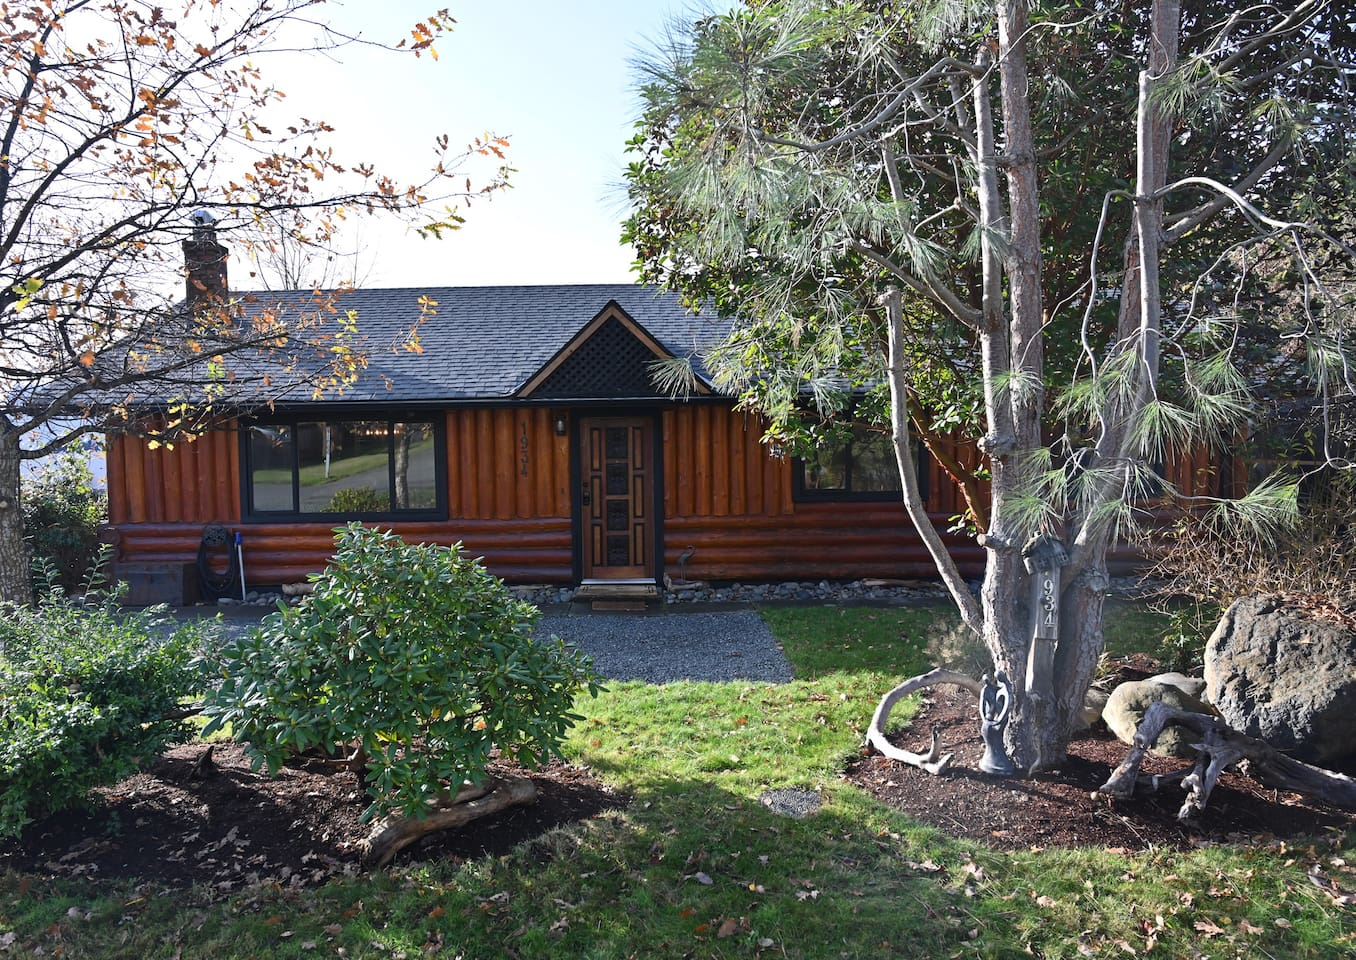 Private & quiet 1/4 acre surrounded by fruit trees yet located within walking distance to local fishing dock, park, pub, beaches, and town core of Sooke.  Enhance your stay with 1/2 hr Swedish massages for two consecutively by the fireplace for $99.